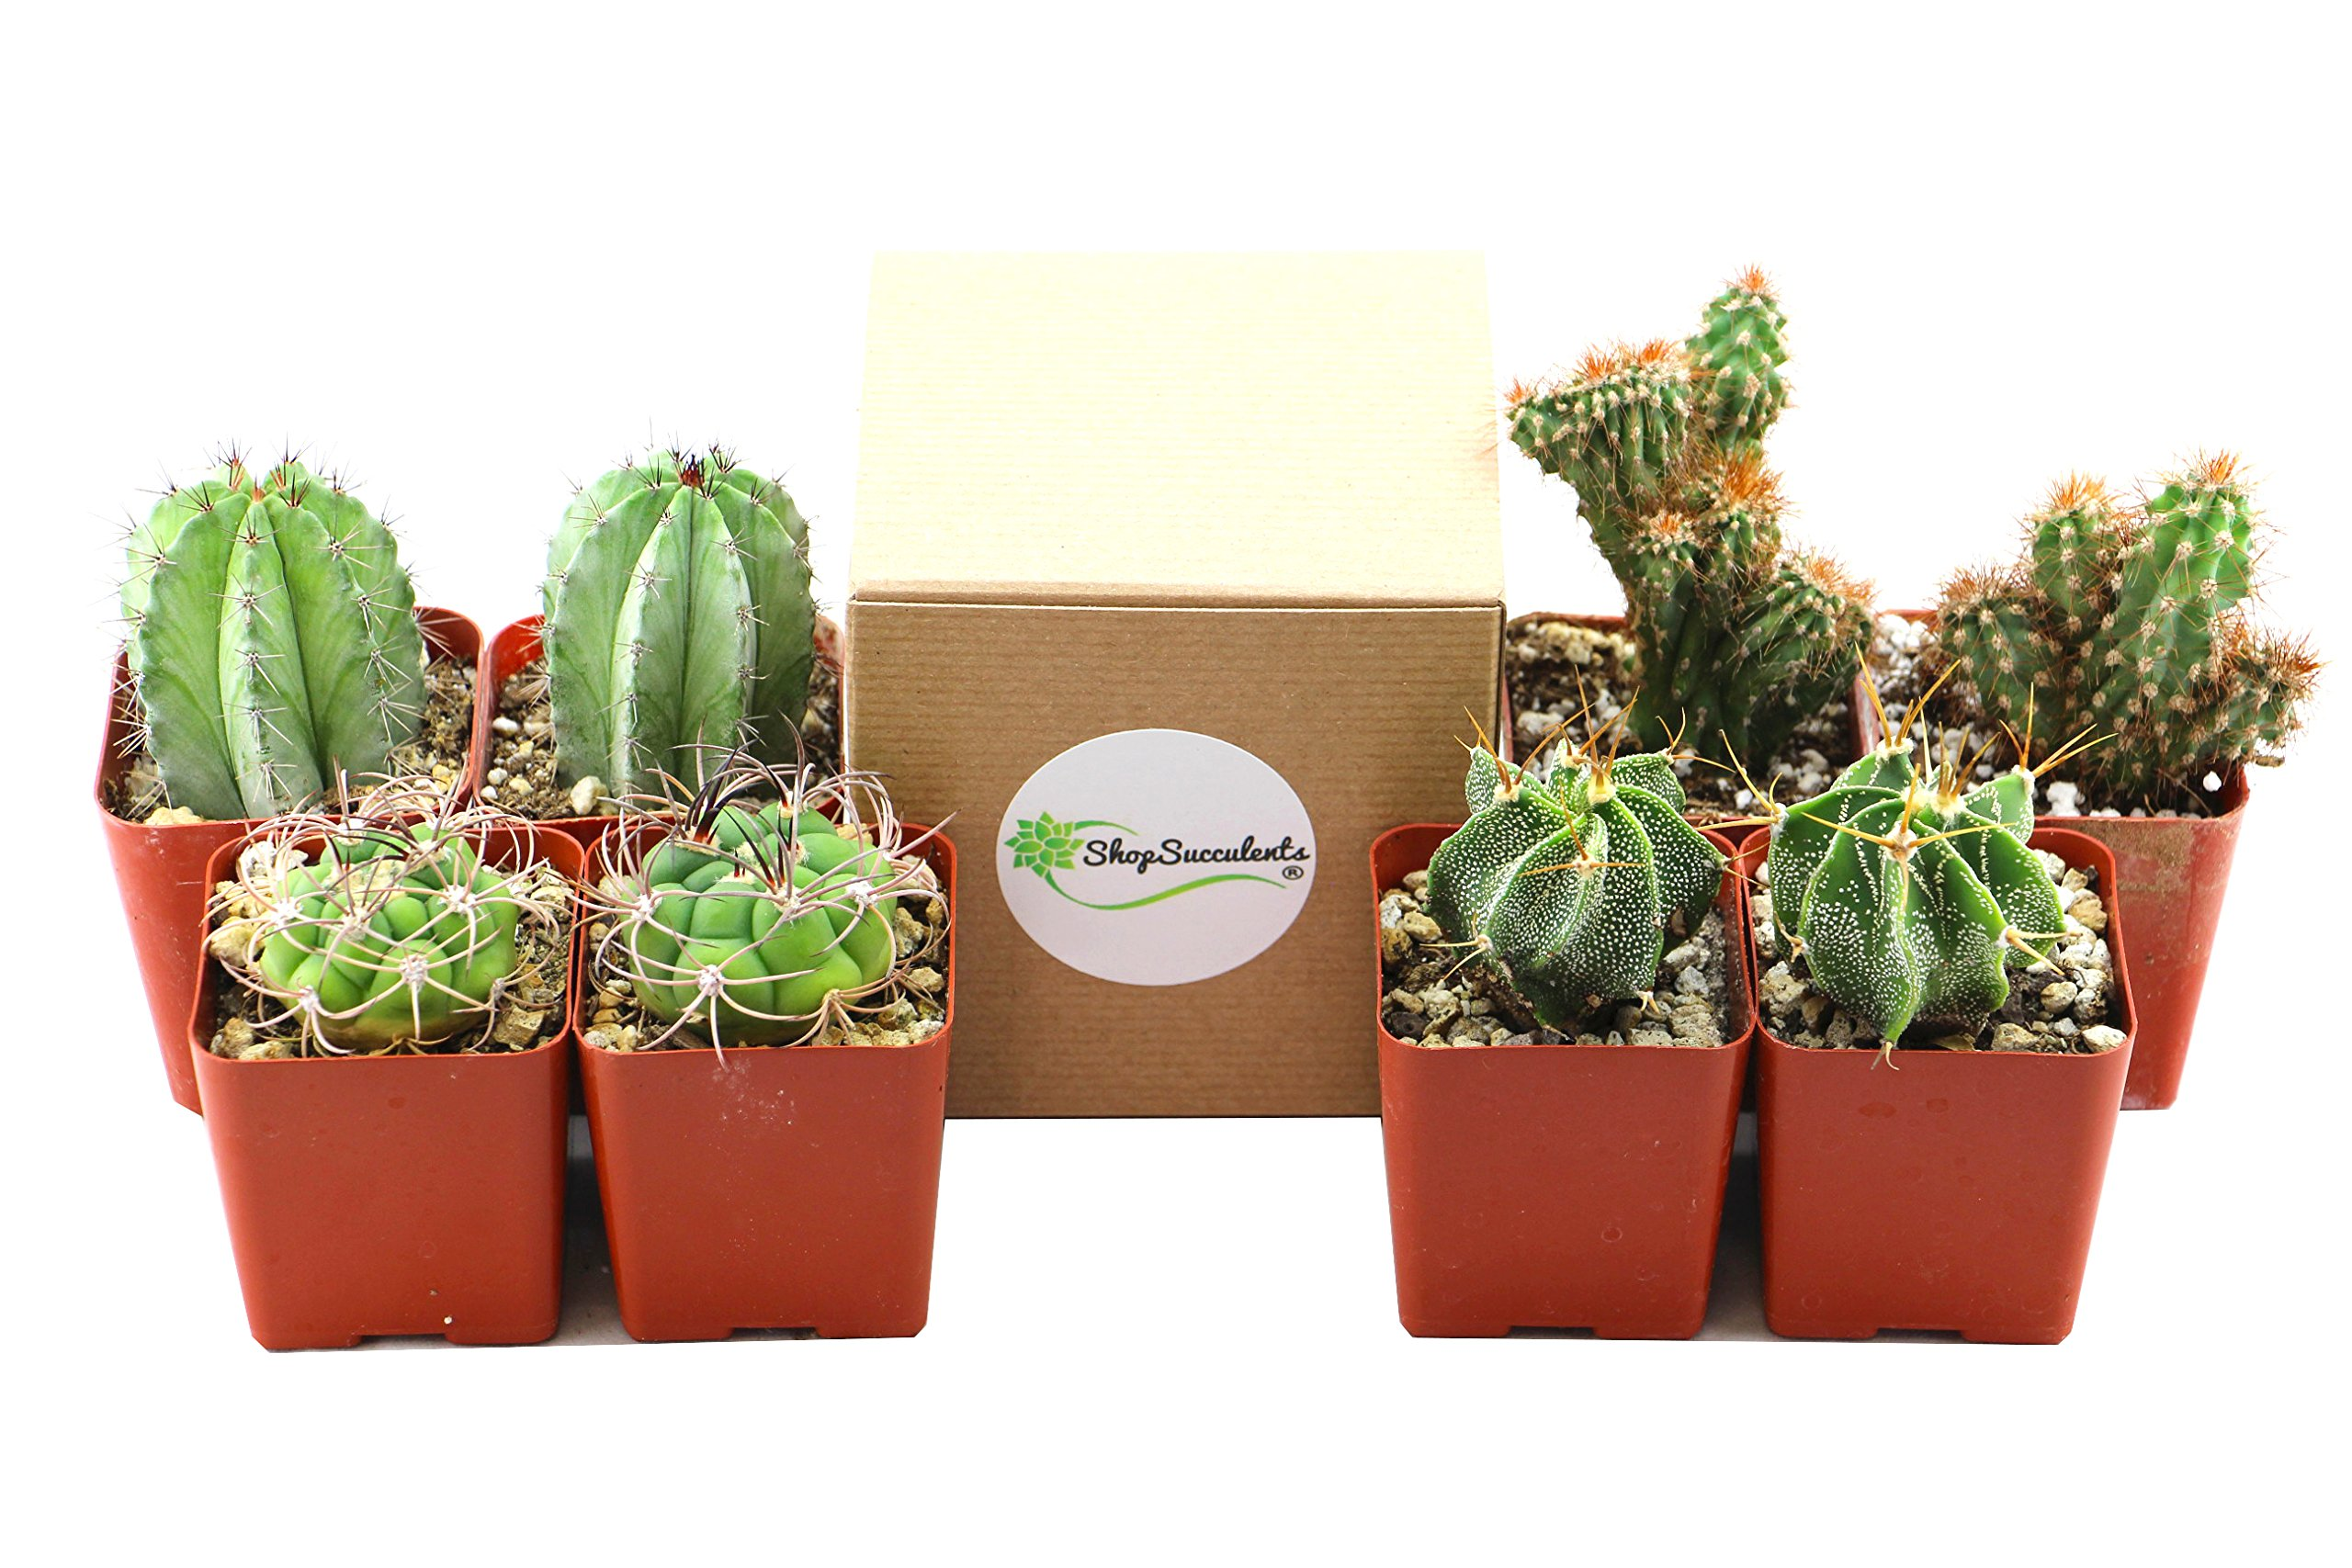 Shop Succulents | Cool Cactus of of Live Succulent Plants, Hand Selected Variety Pack of of Cacti in 2.5'' pots | Collection of 8